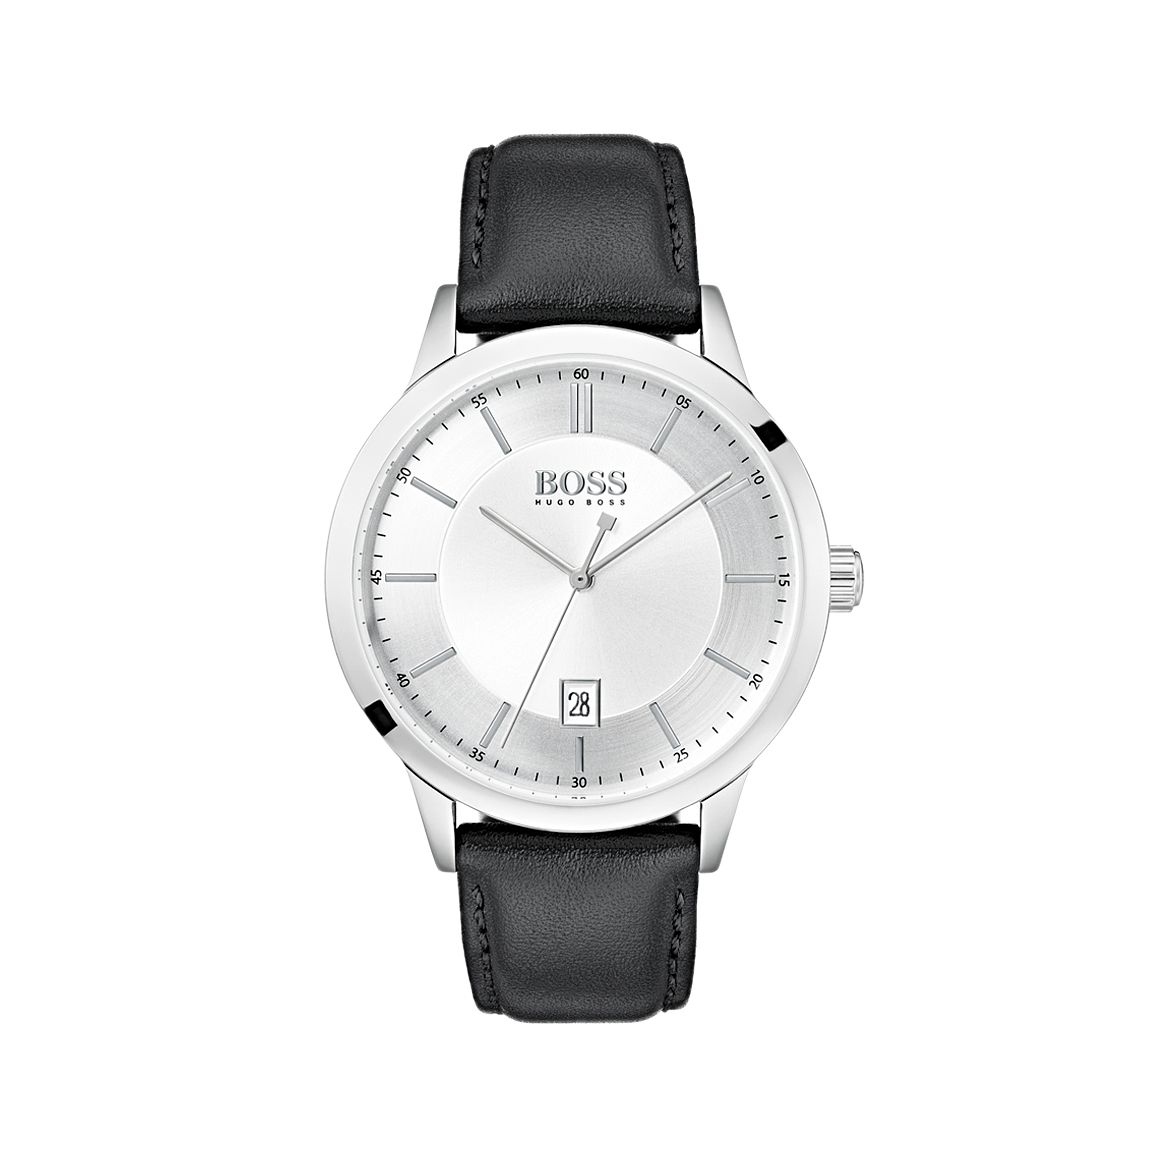 BOSS Officer Men's Black Leather Strap Watch - Product number 5251508